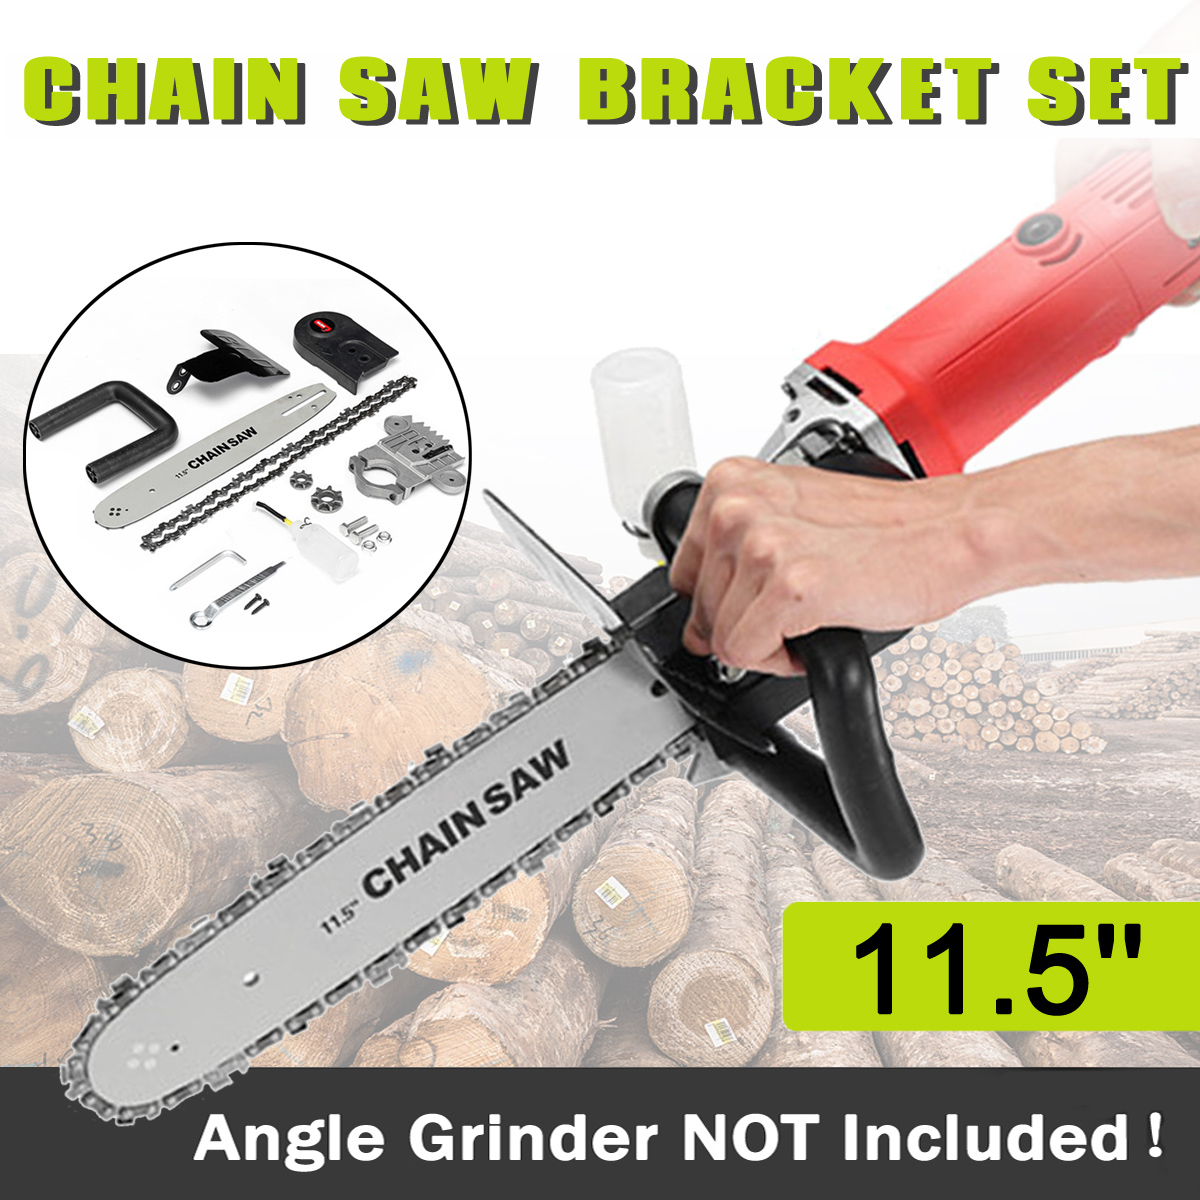 Electric saws Upgrade 11.5 Inch Chainsaw Bracket Changed 100 125 150 M10/M16 Angle Grinder Into Chain Saw Woodworking Tool electric saws 11 5 inch chainsaw bracket set high carbon steel for electric angle grinder to chain saw woodworking power tools